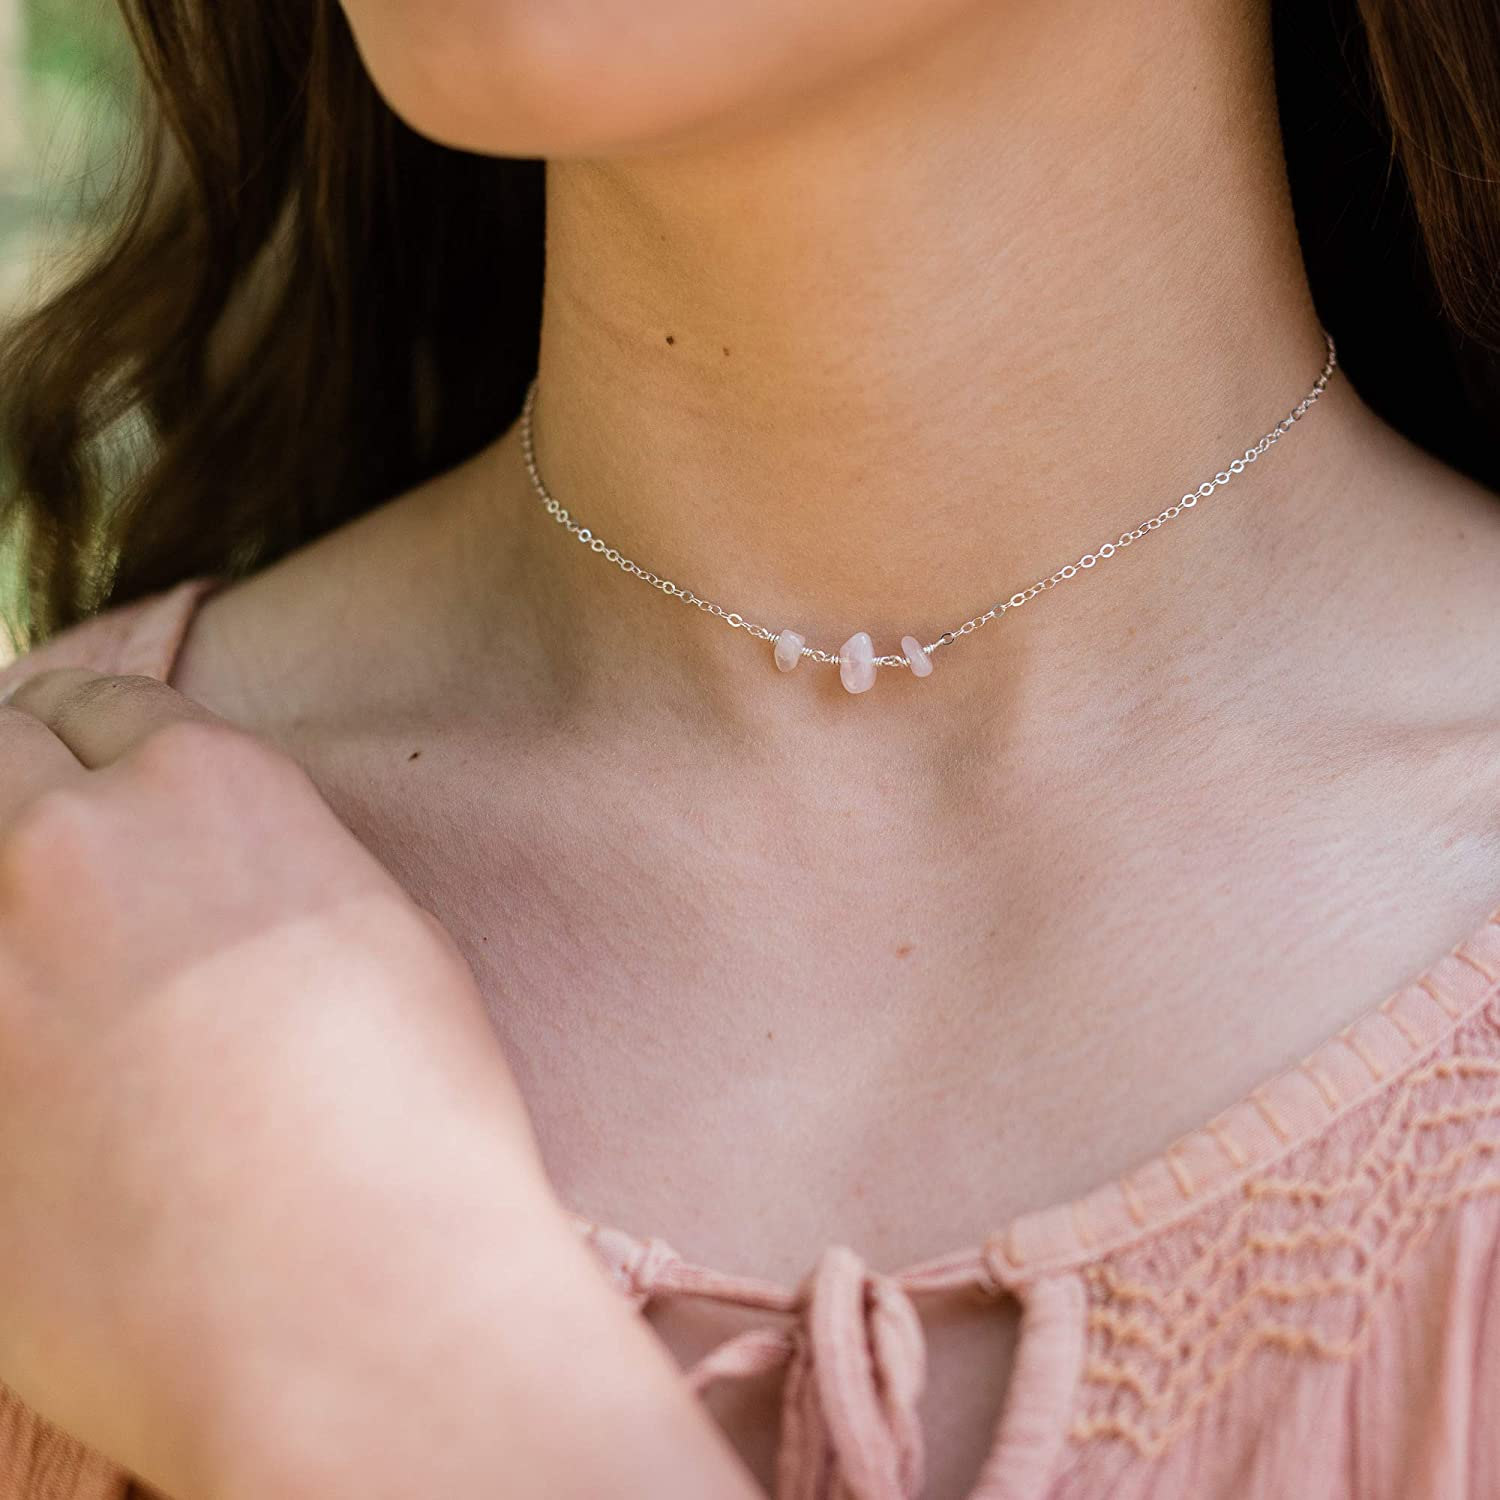 Rose Quartz Chain Necklace 925 Sterling Silver for Women and Girls